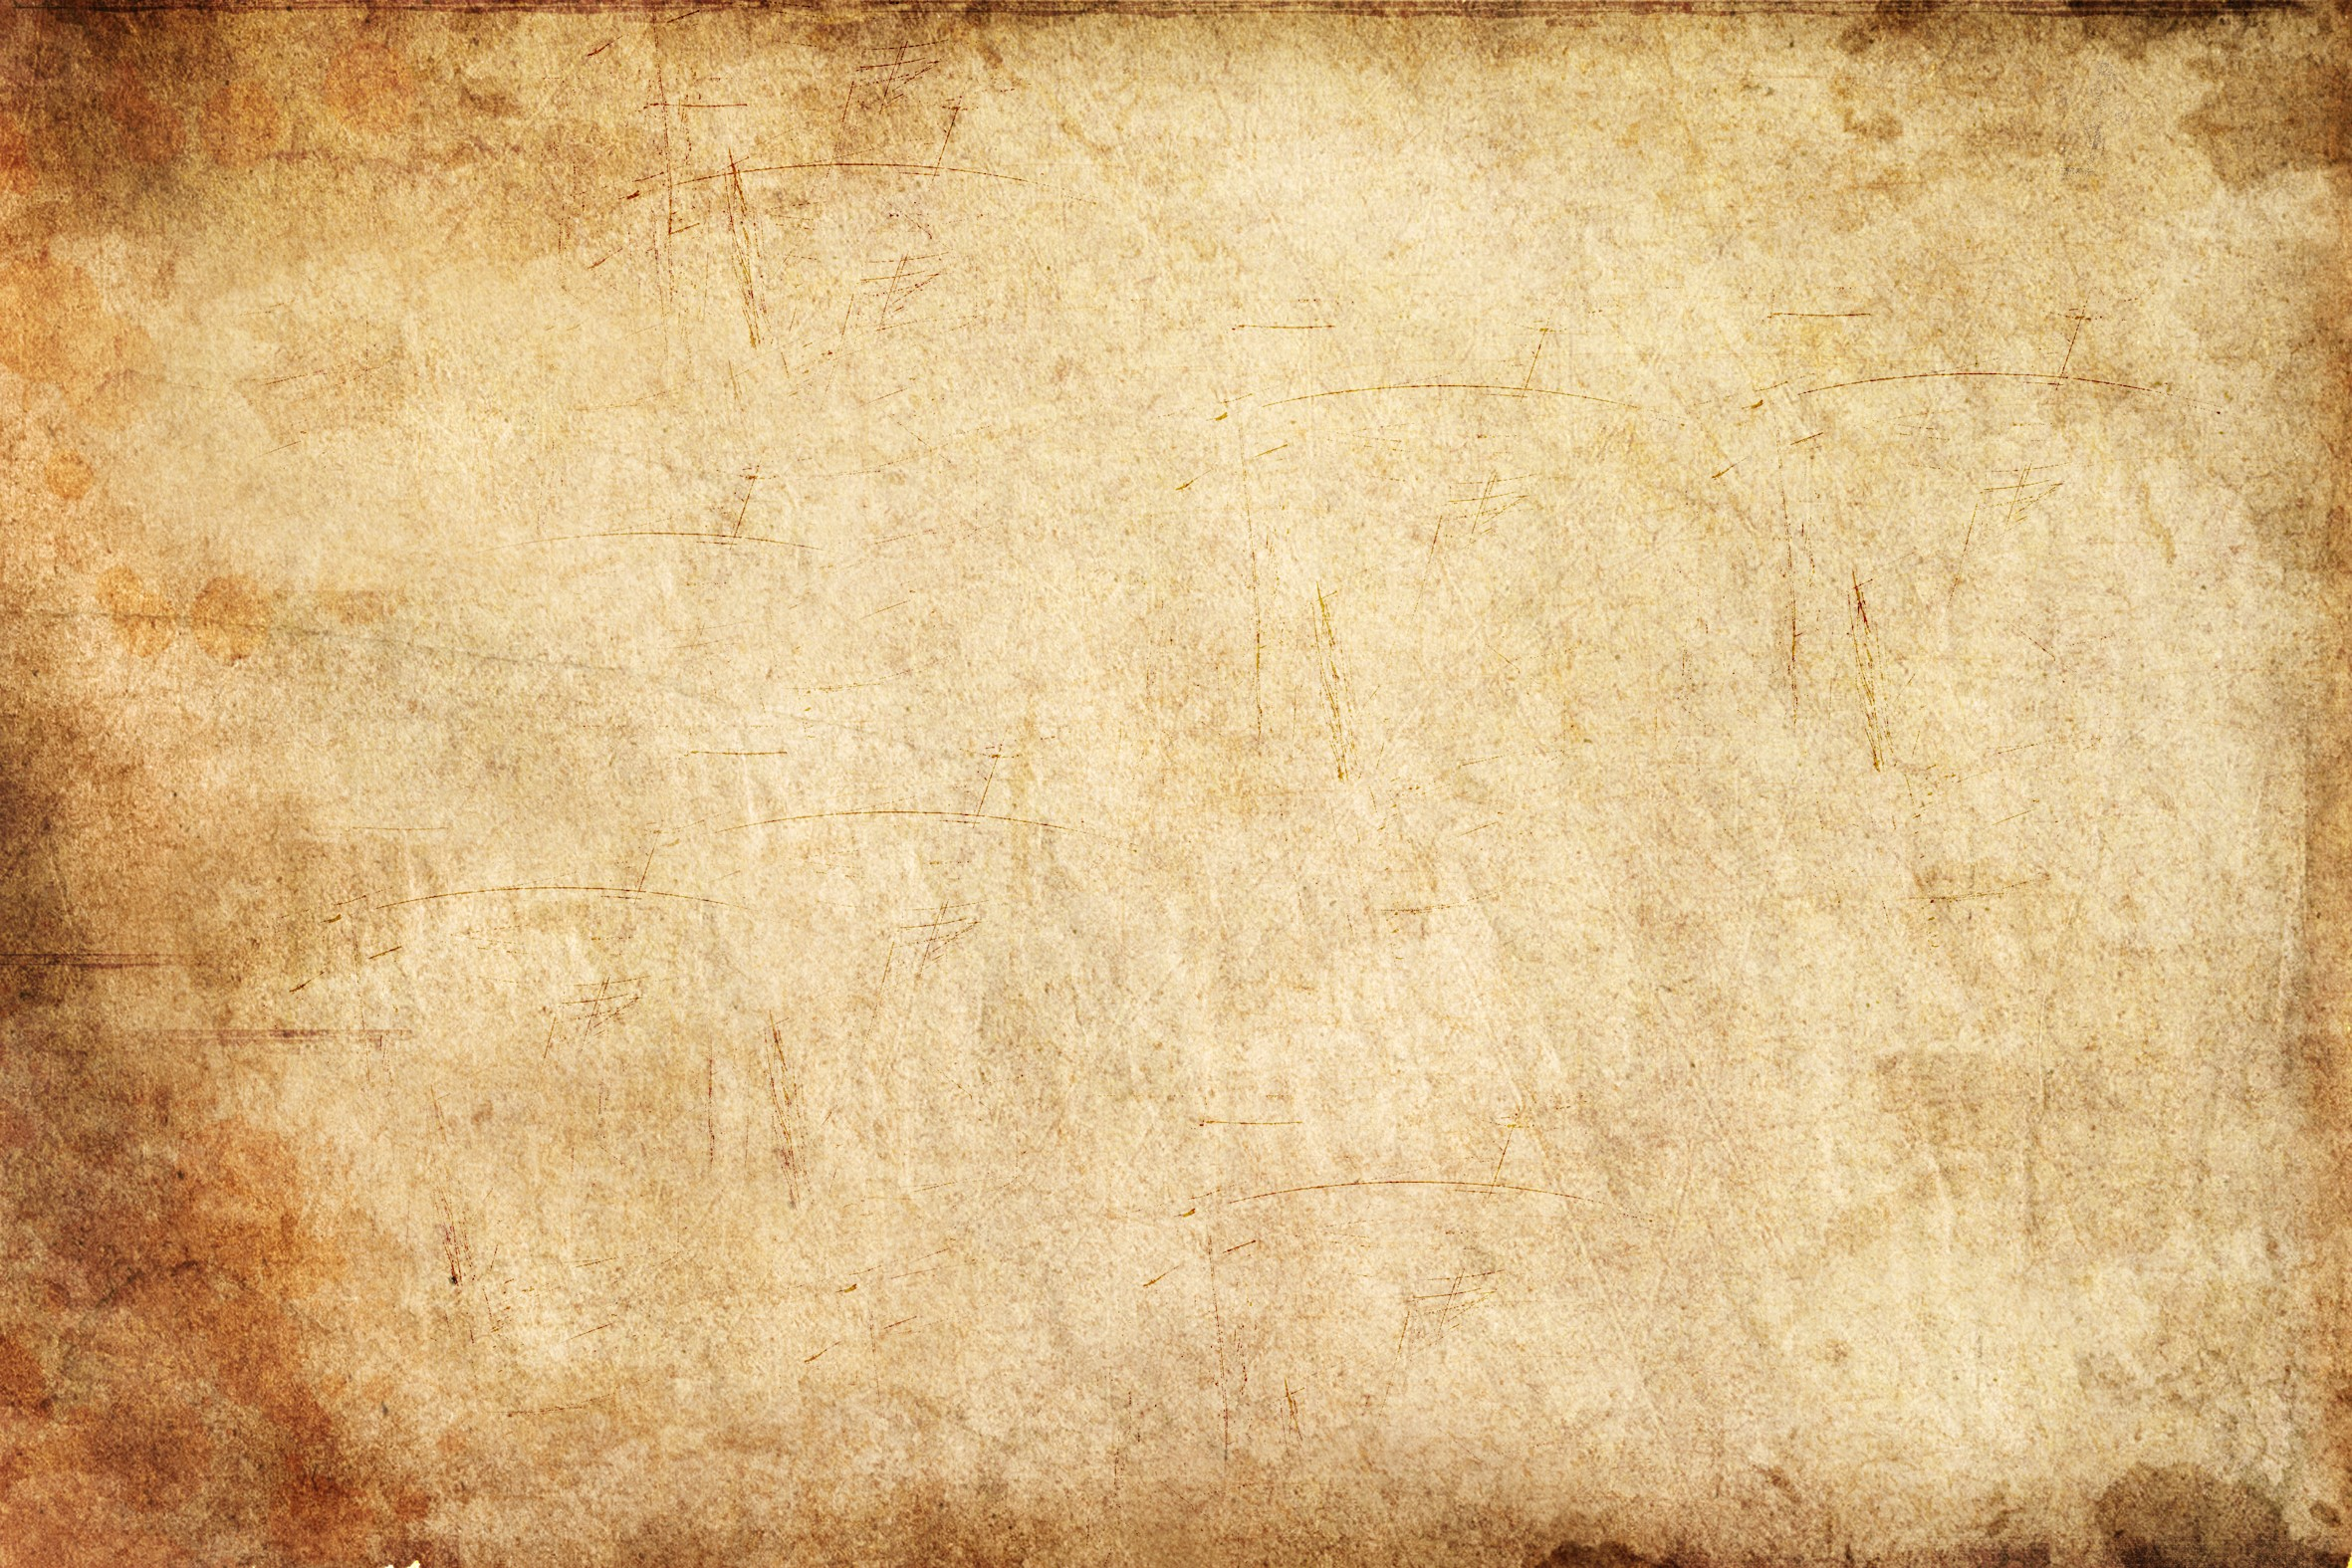 Paper Grunge Background One Hundred and Seven | Photo Texture ...